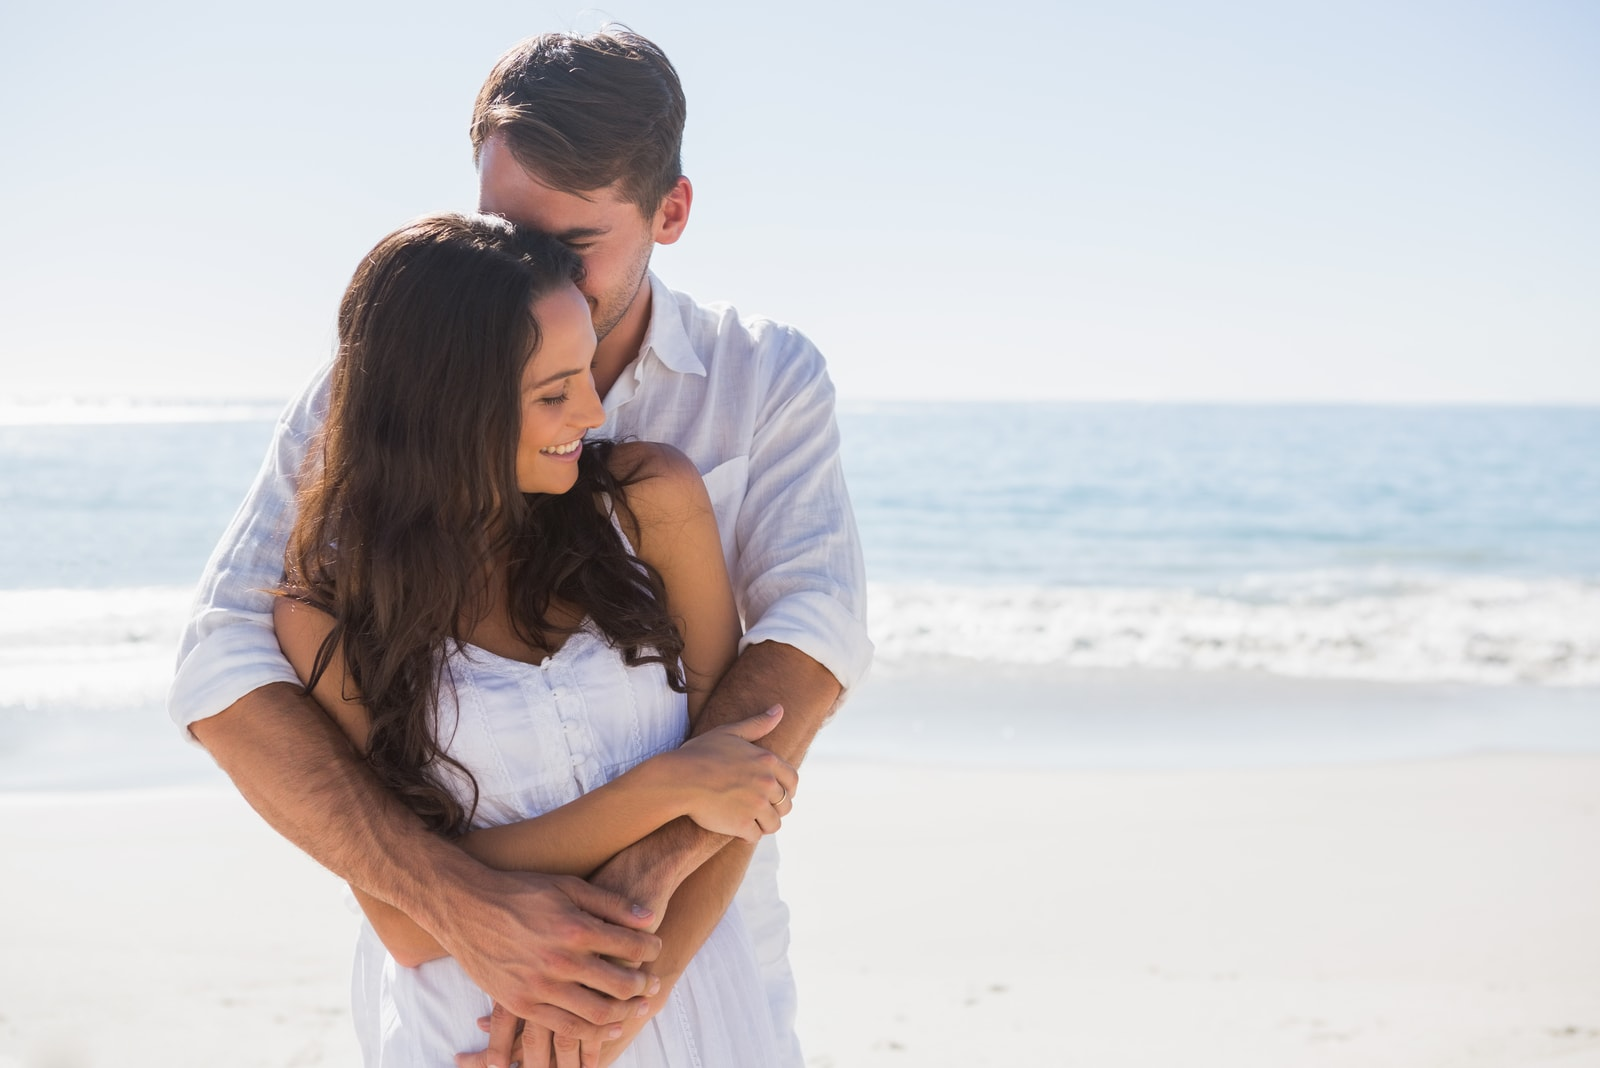 5 Signs That The Person You Love is Your True SOULMATE